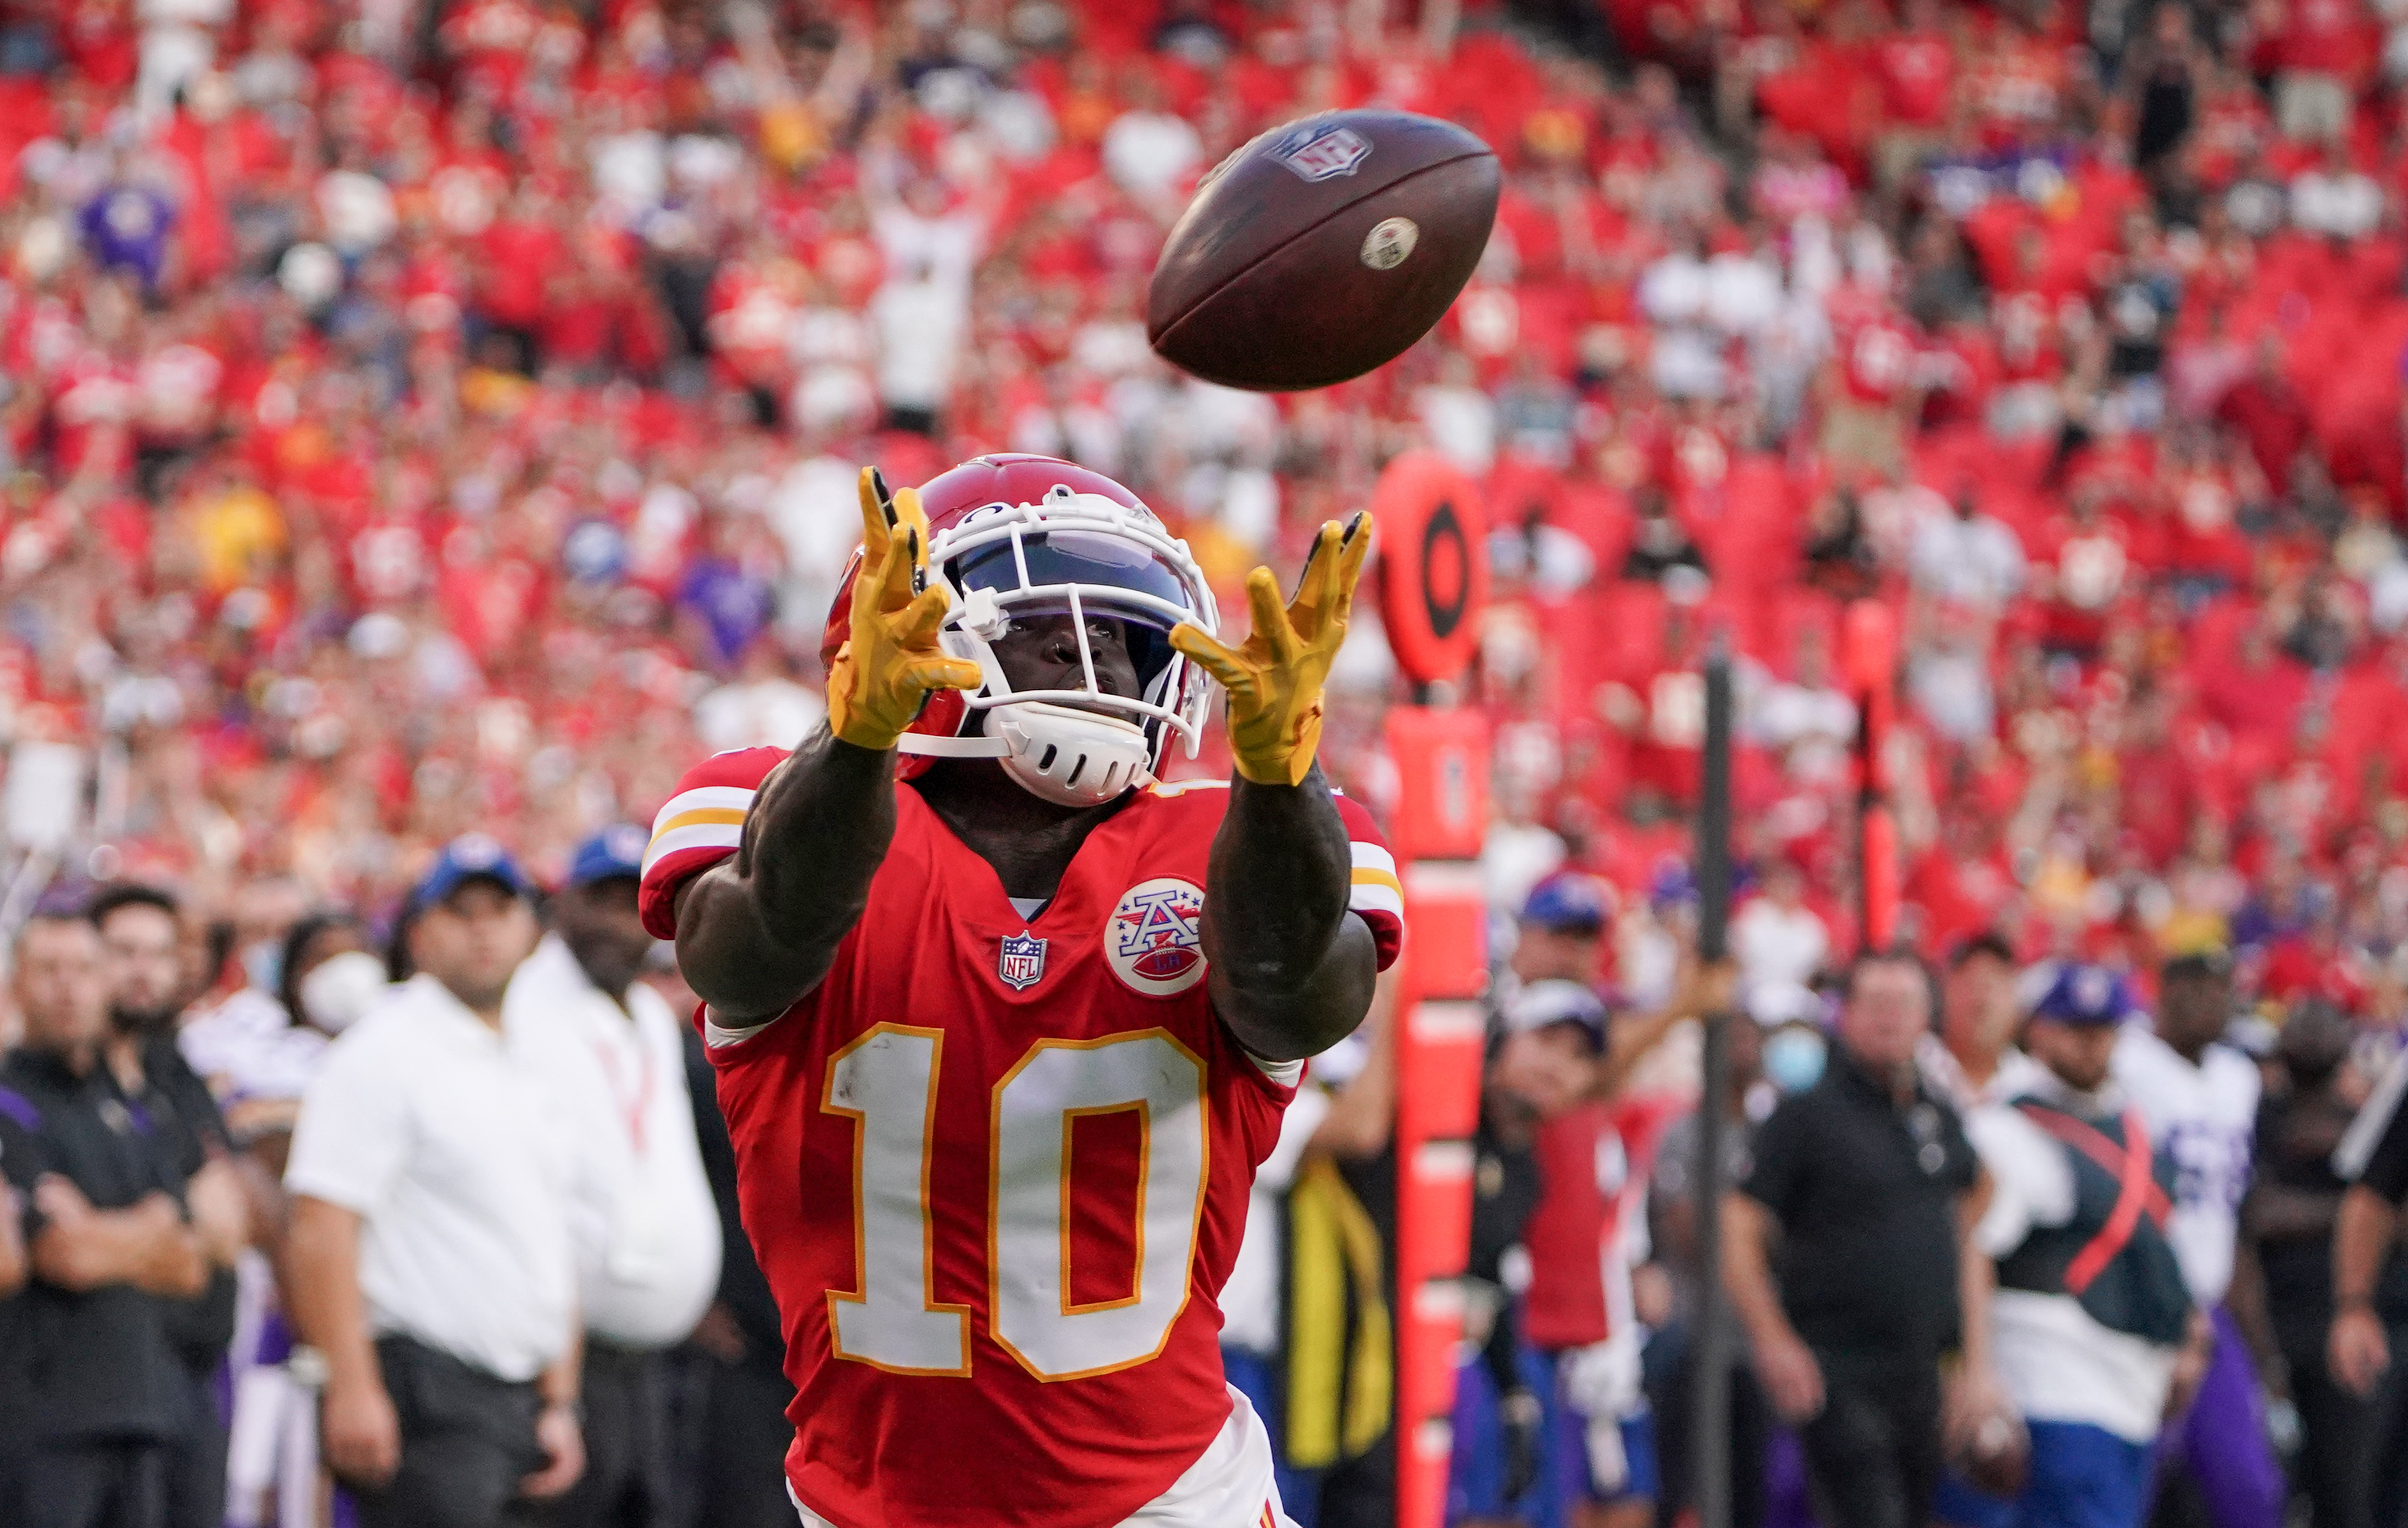 Kansas City Chiefs wide receiver Tyreek Hill (10) catches a pass for a touchdown against the Minnesota Vikings during the first quarter at GEHA Field at Arrowhead Stadium.